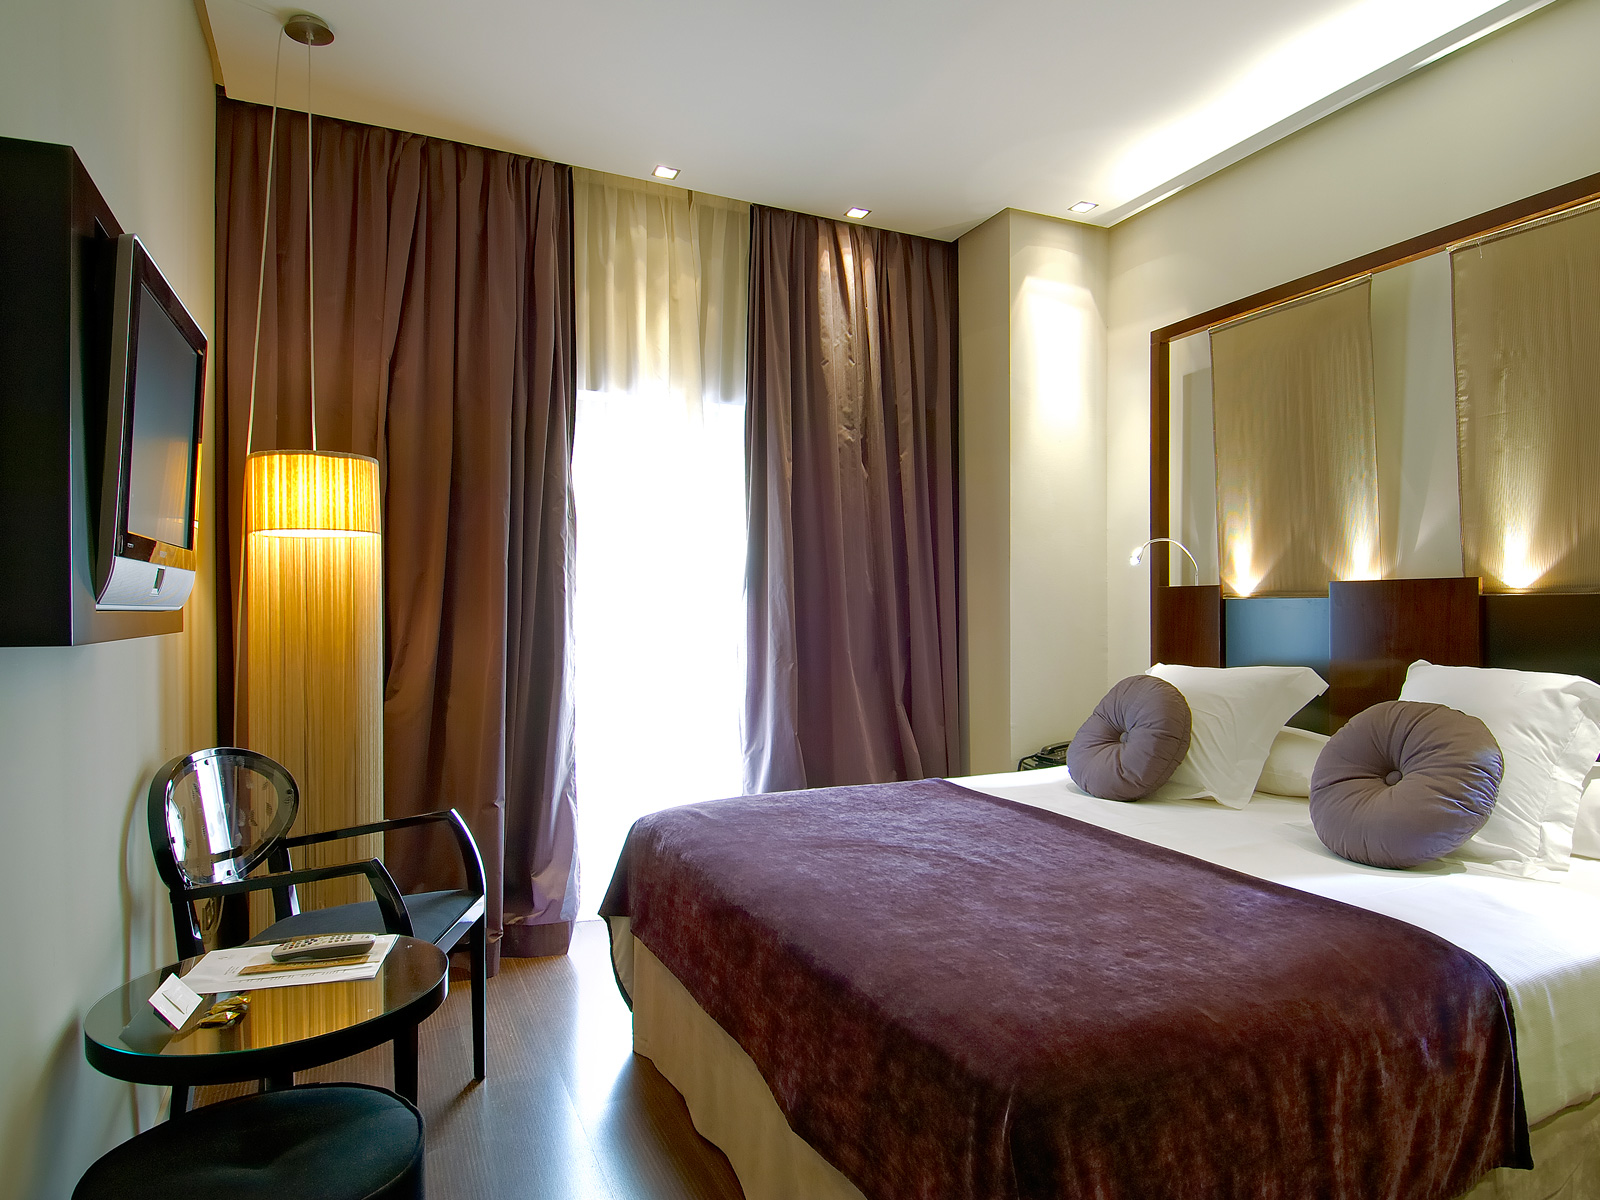 Offers Hotel Vincci Valencia Palace - Stay 3 nights and save -15%!